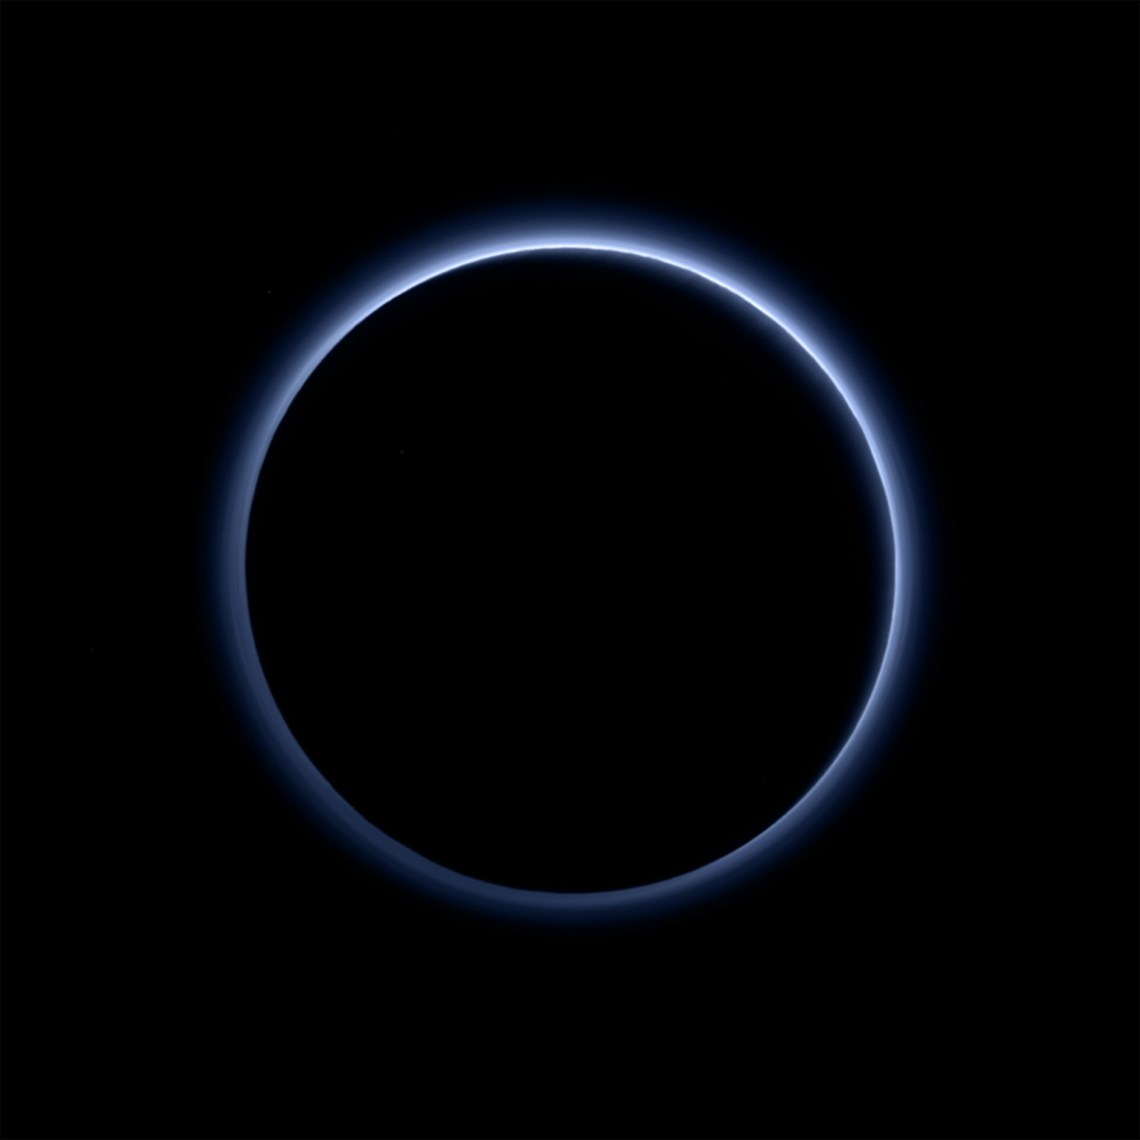 Figure 16: Pluto's 'blue skies', imaged by New Horizons' Ralph/ Multispectral Visible Imaging Camera (MVIC). This blue colour results from the scattering of sunlight by very small particles, in this case probably tholins, soot-like particles created by complex chemical reactions of nitrogen and methane initiated by ultraviolet light from the Sun. Credit: NASA/JHUAPL/SwRI